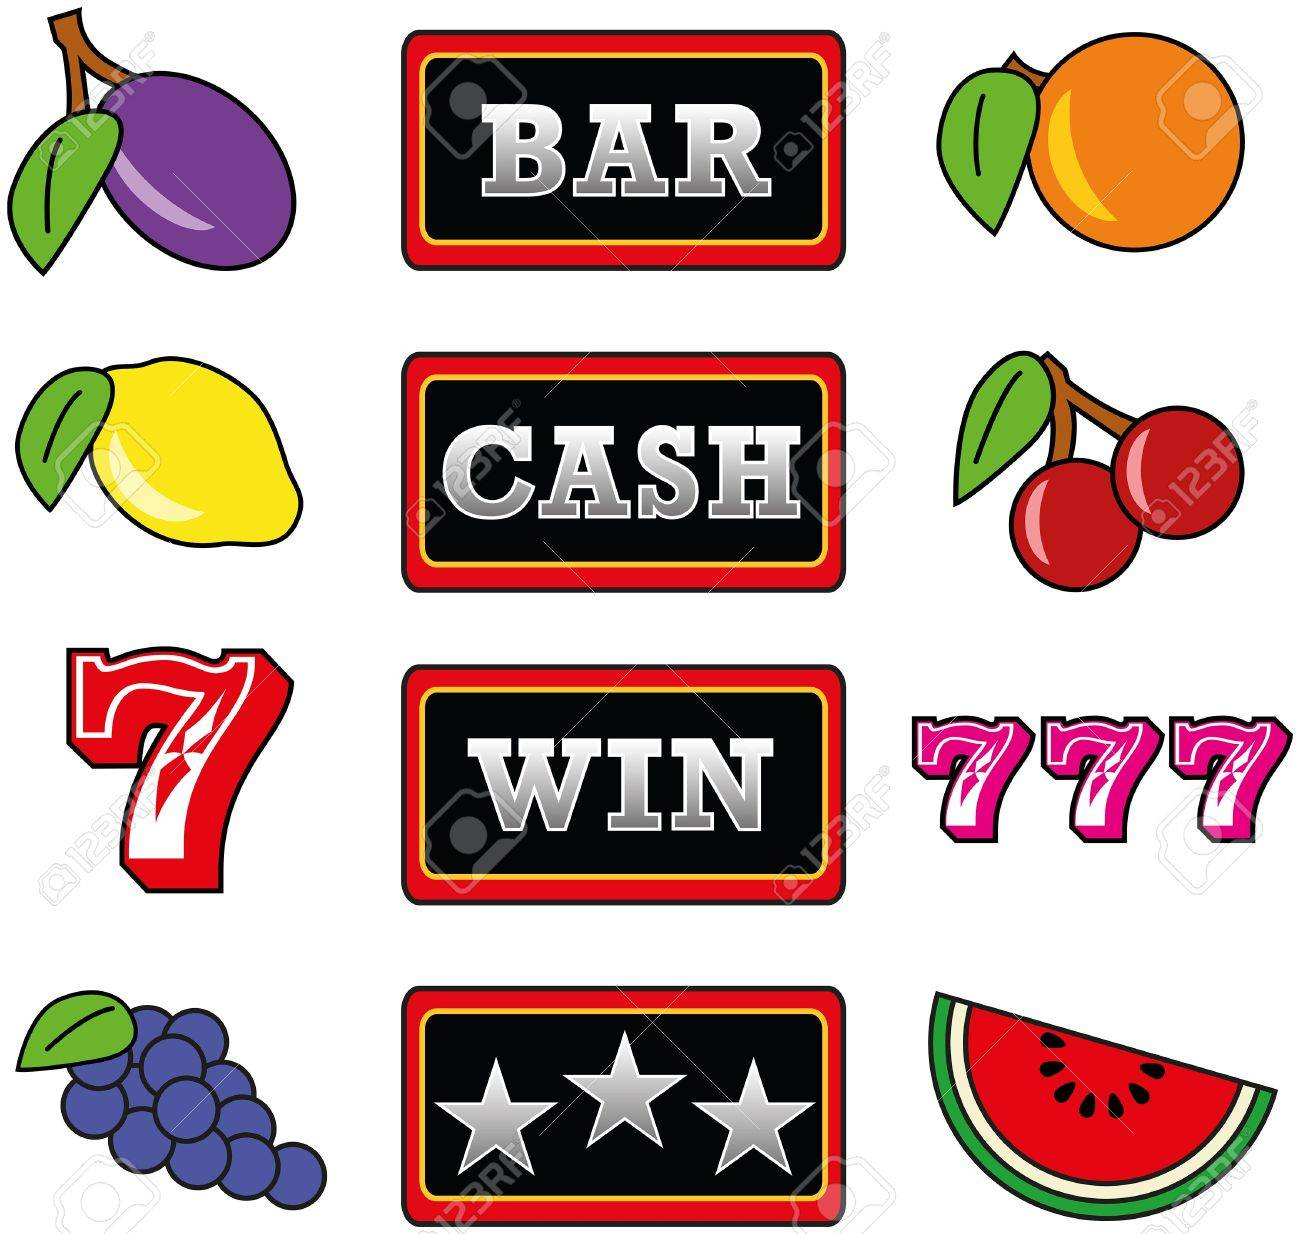 867 Cherry Slot Machine Symbol Stock Illustrations, Cliparts And ...